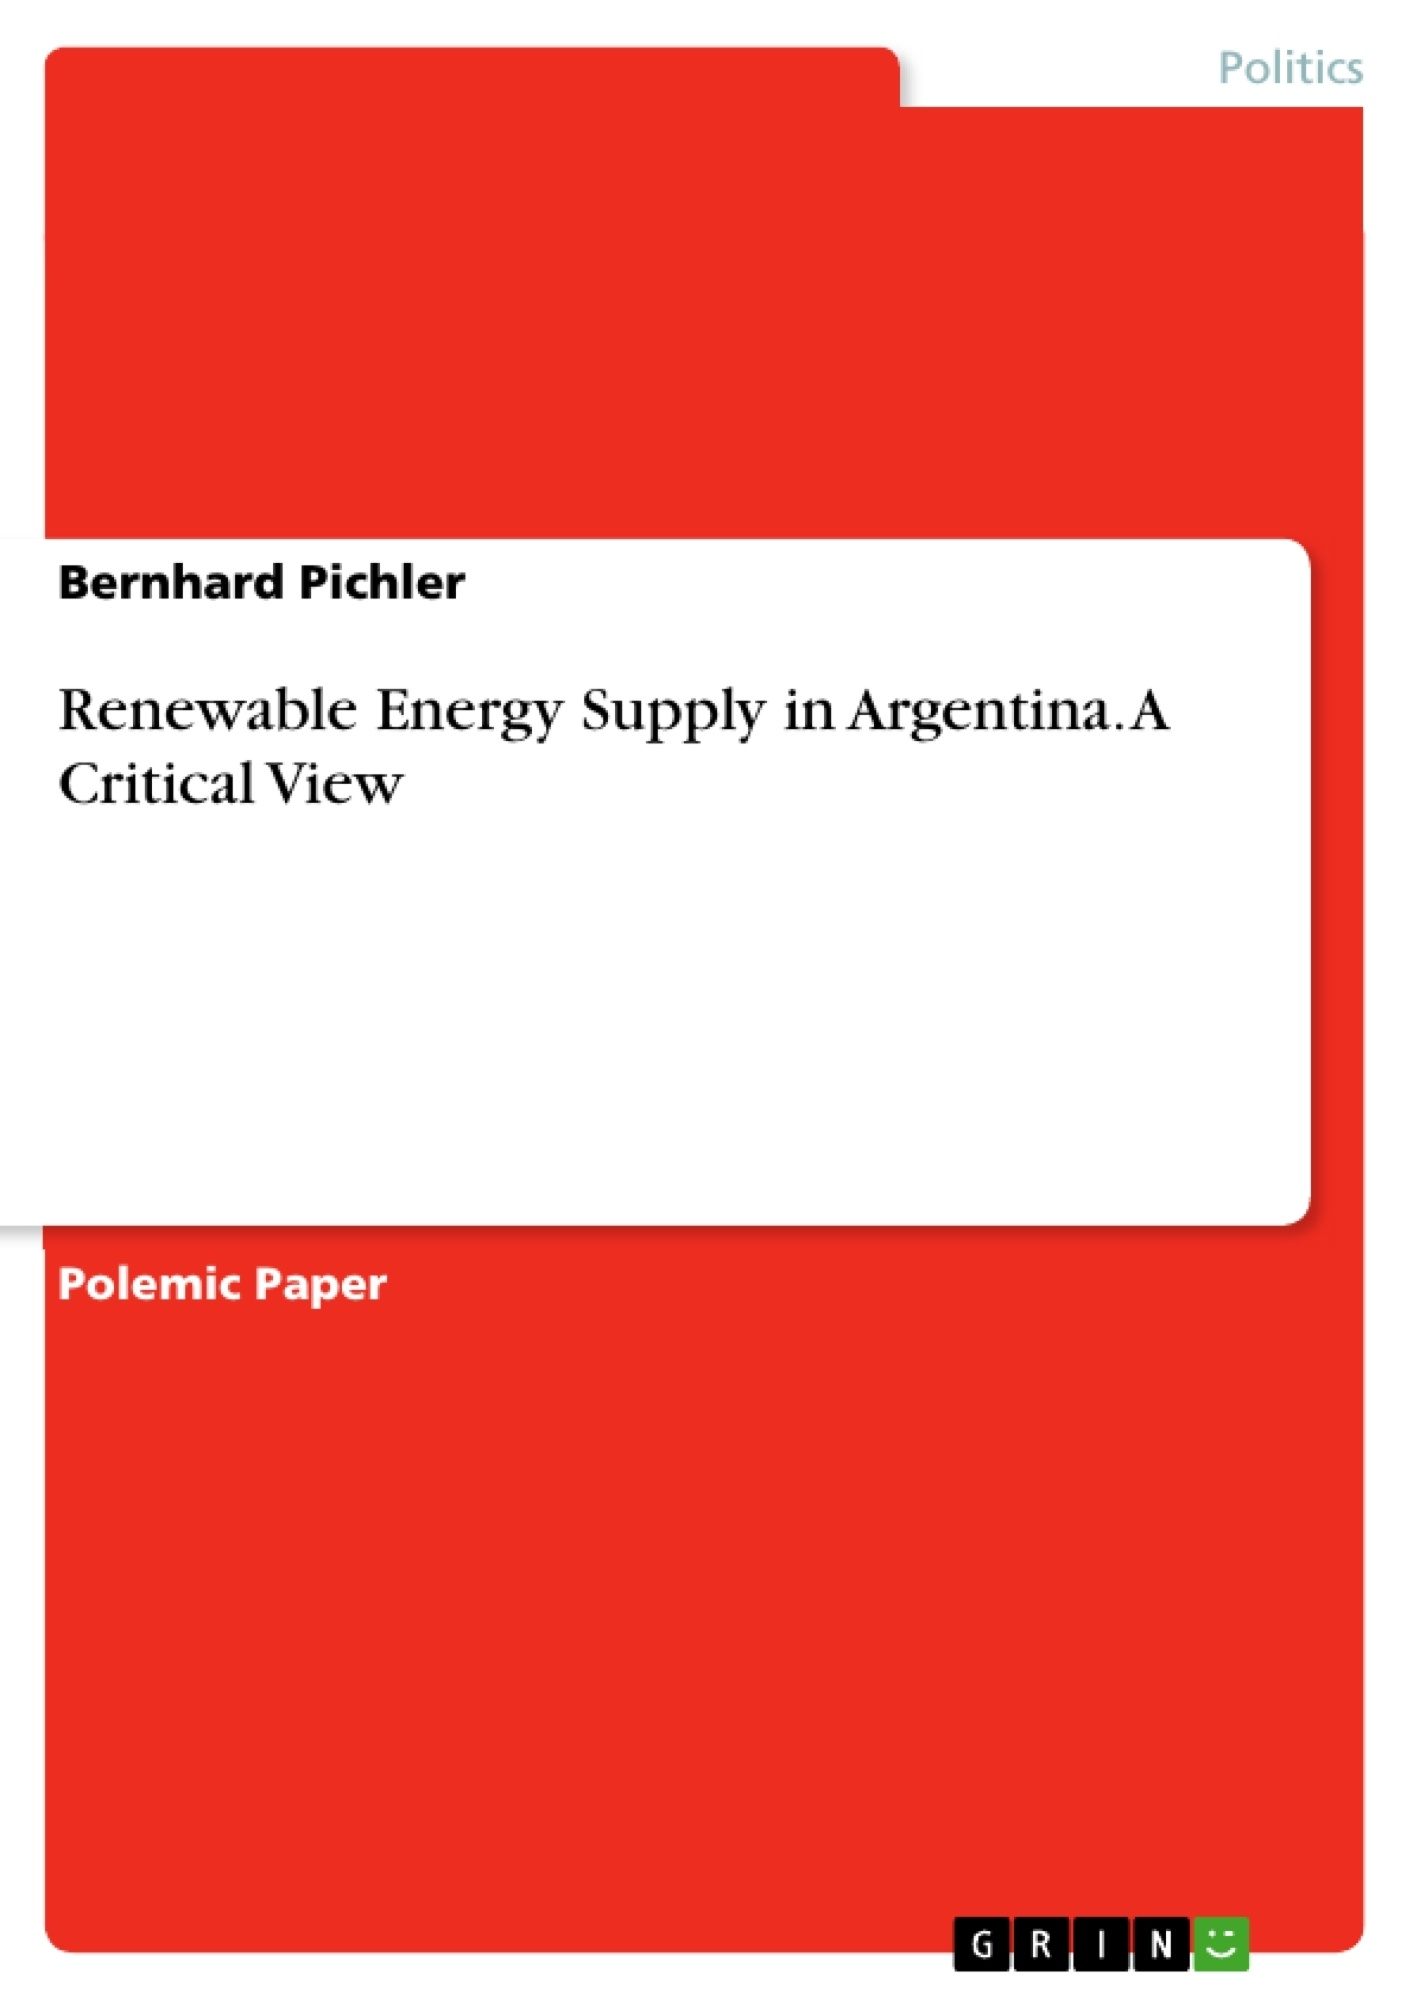 Title: Renewable Energy Supply in Argentina. A Critical View